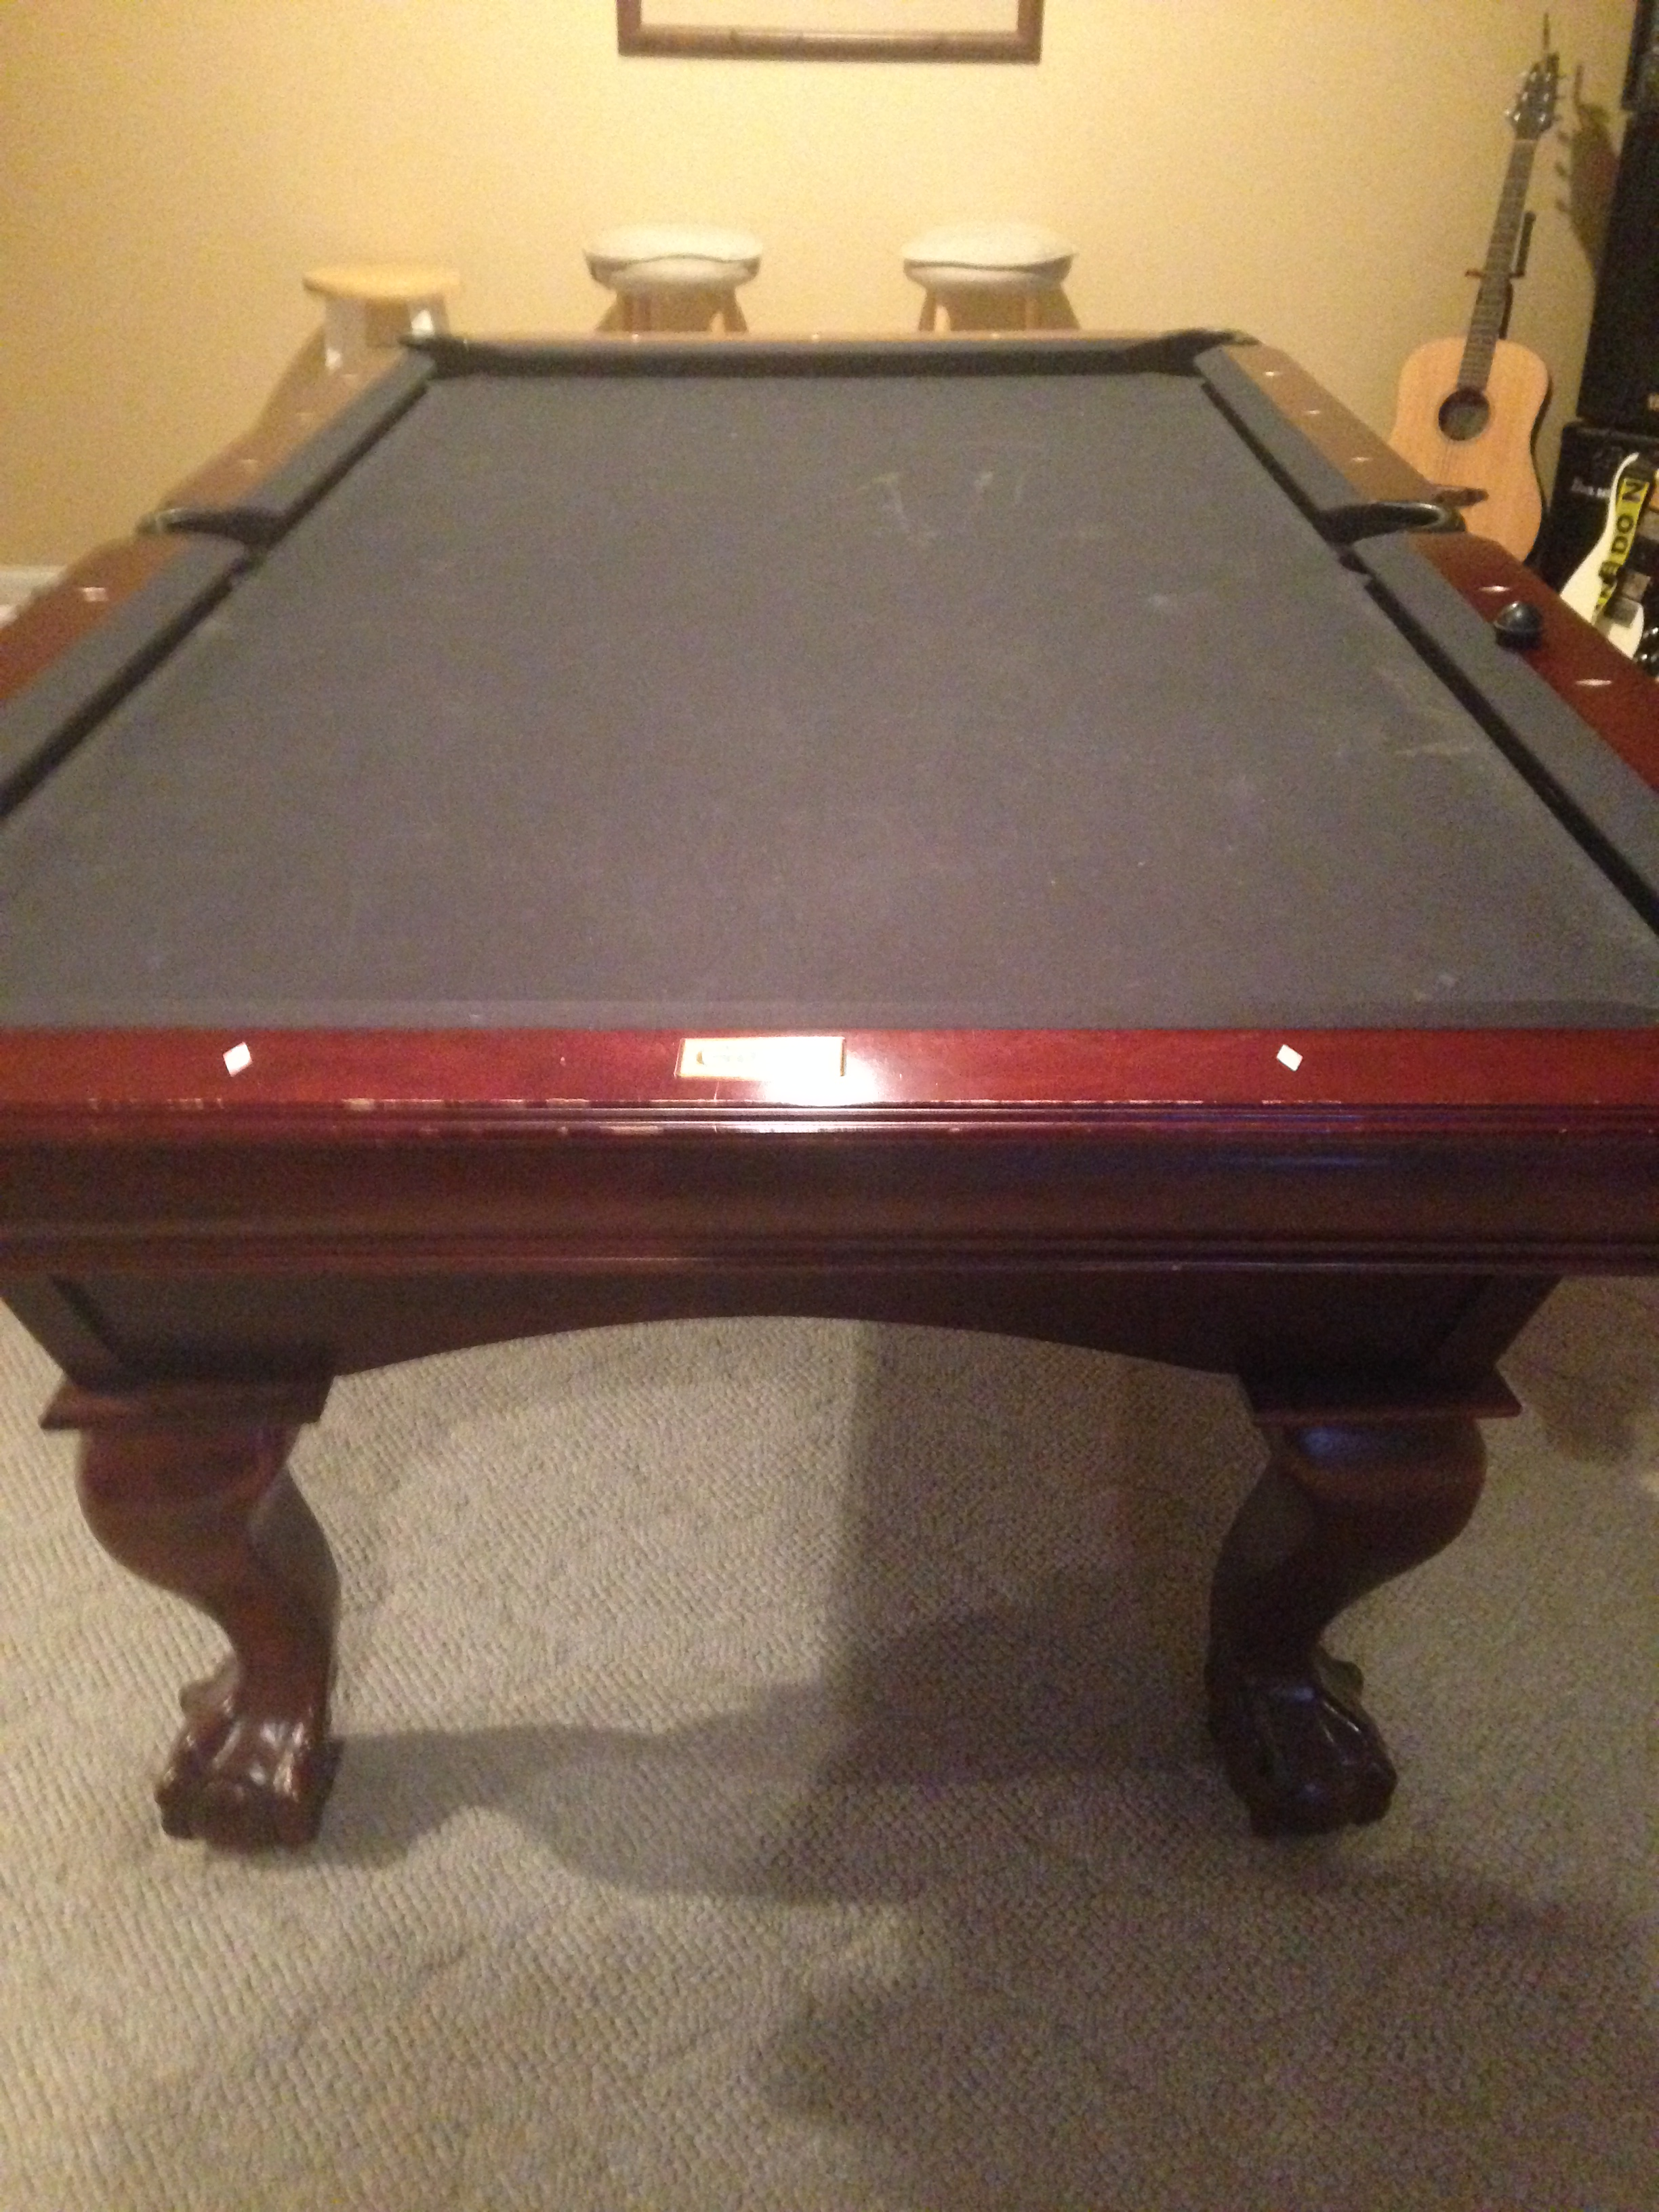 Need Help Identifying The Model Of My Gandy - Gandy pool table